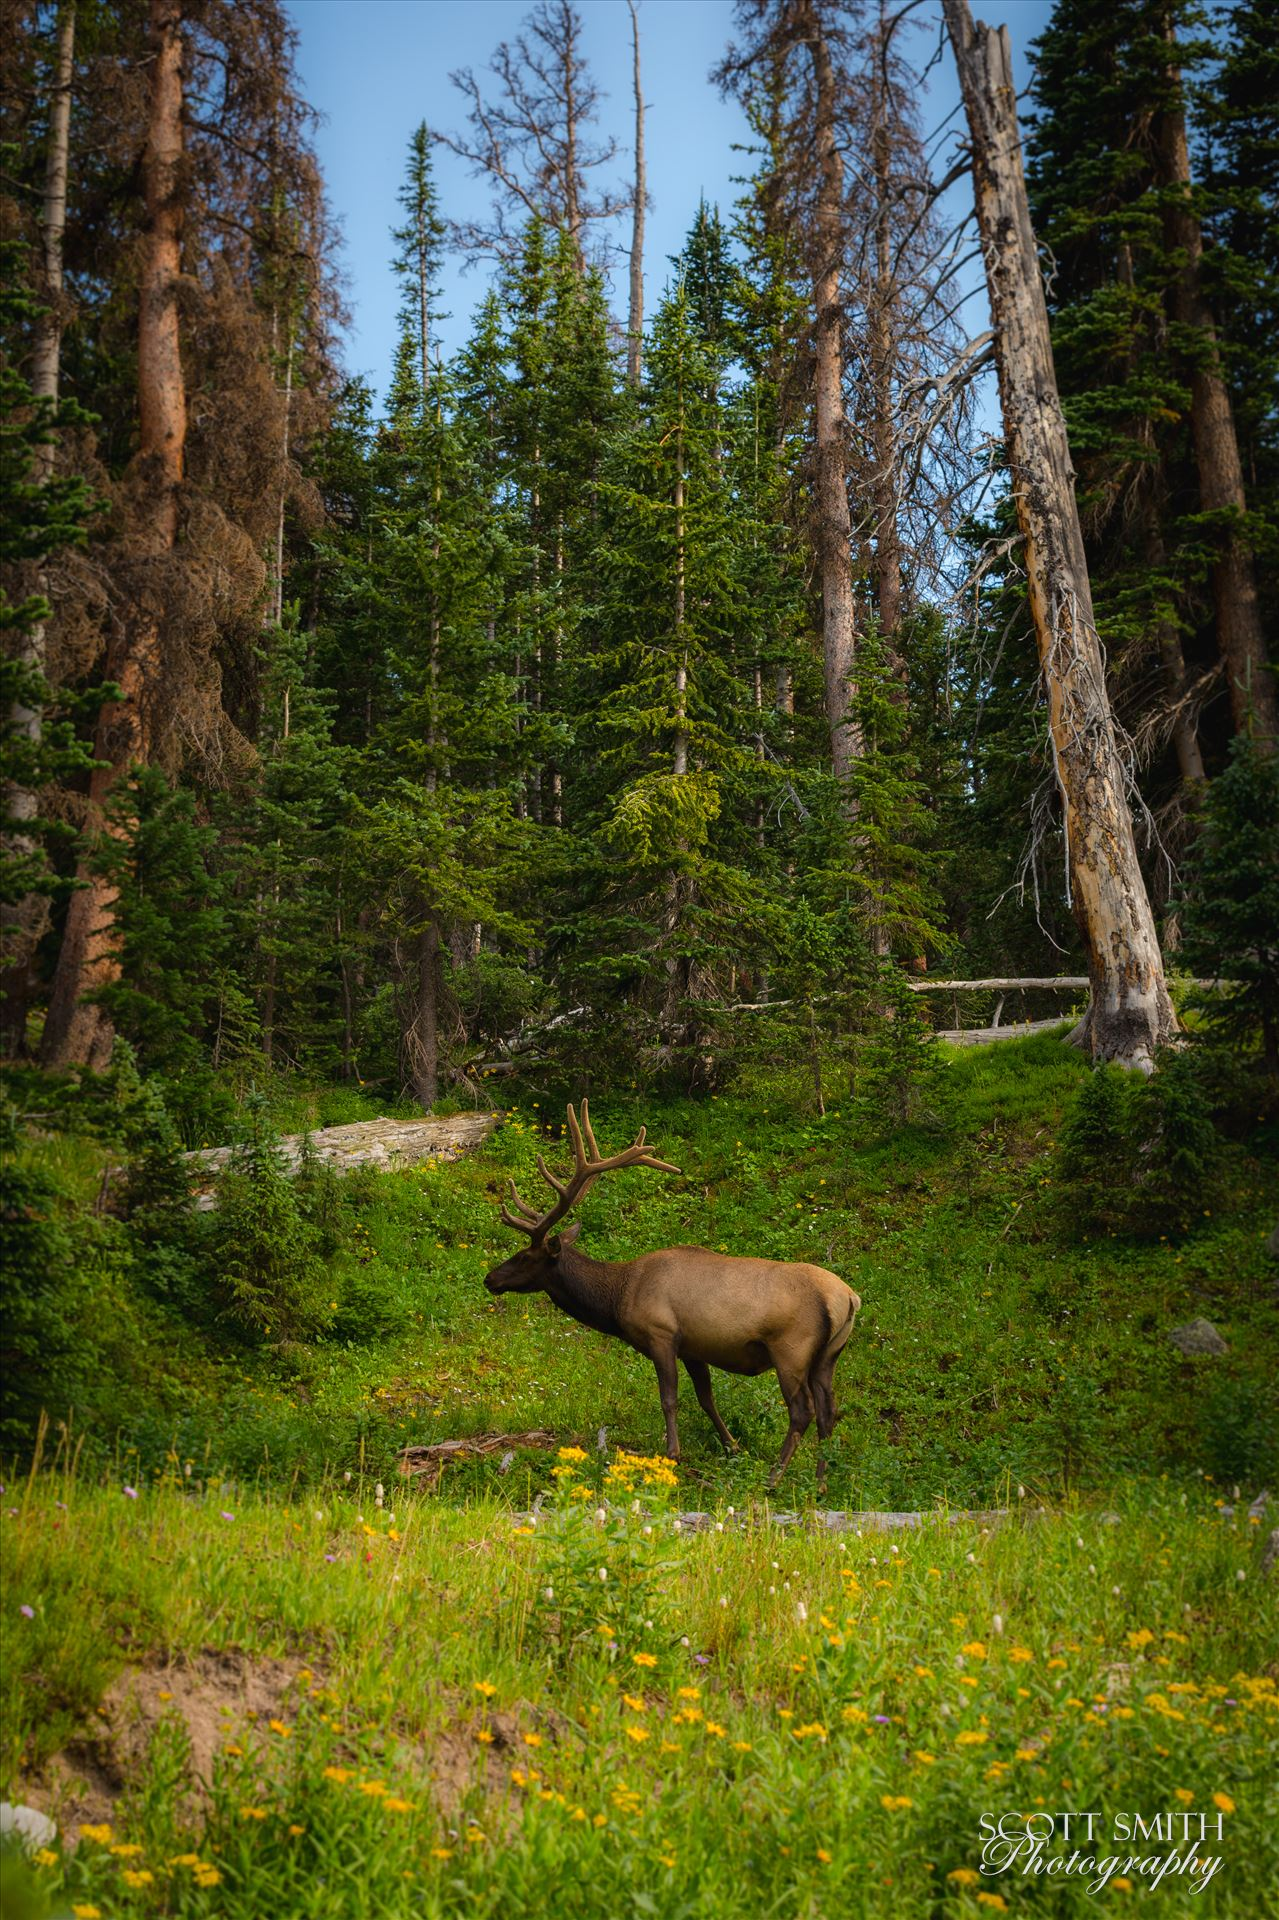 Elk in the Wild - A fairytale setting in Rocky Mountain National Park, just off Trail Ridge Road. A fully grown elk buck grazes on the lush growth. by D Scott Smith